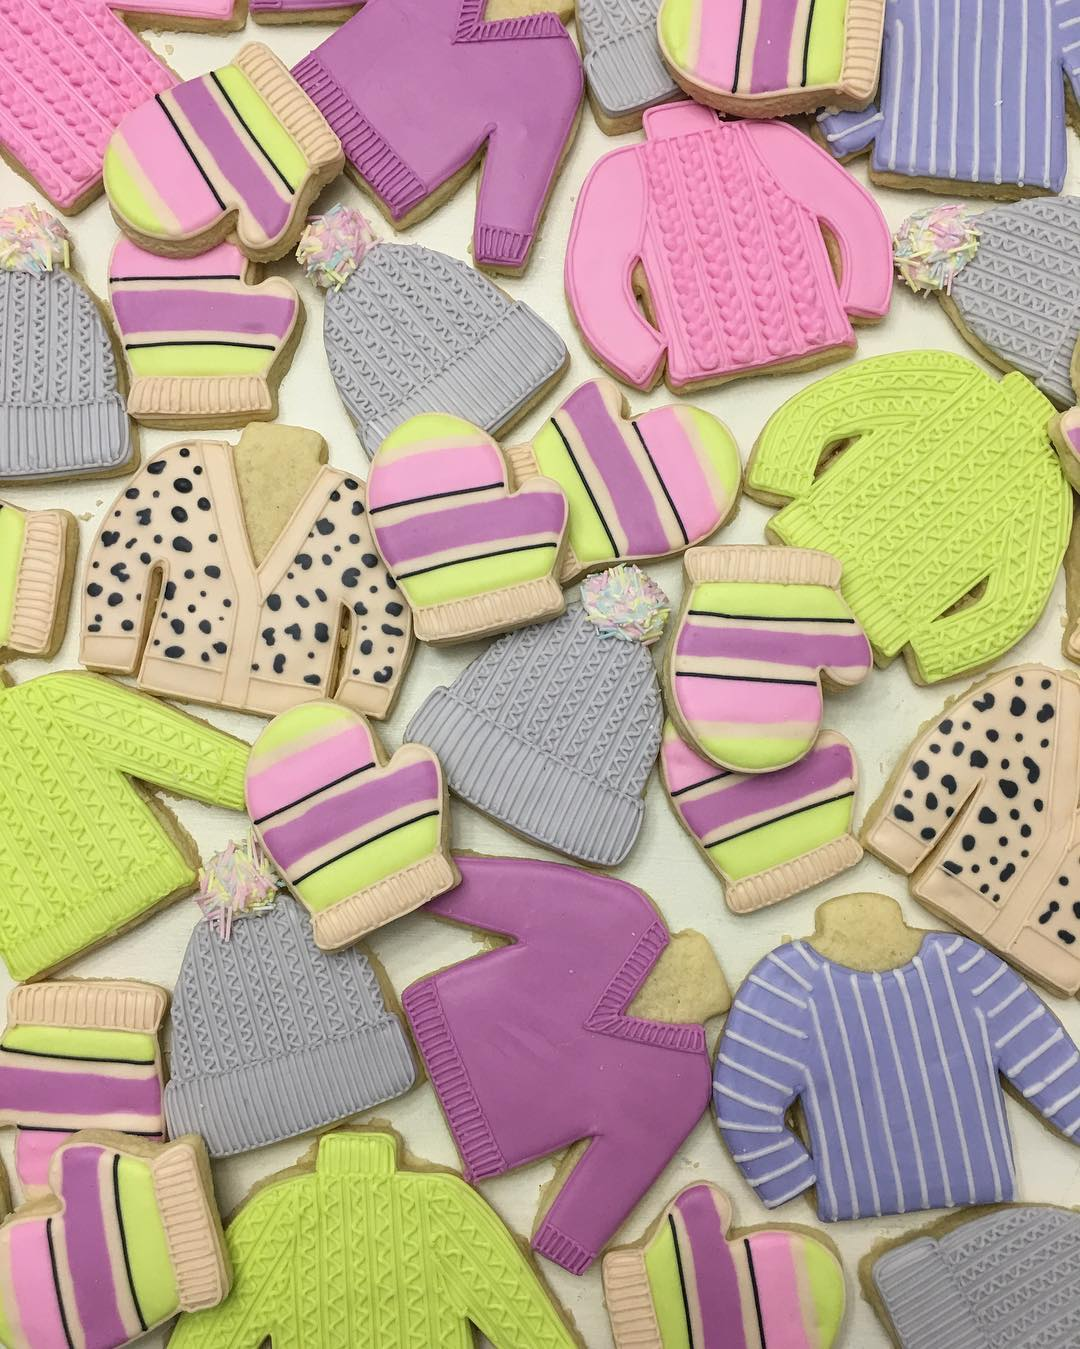 Think You Can't Make Intricate Cable-Knit Sweater Cookies? Think Again!